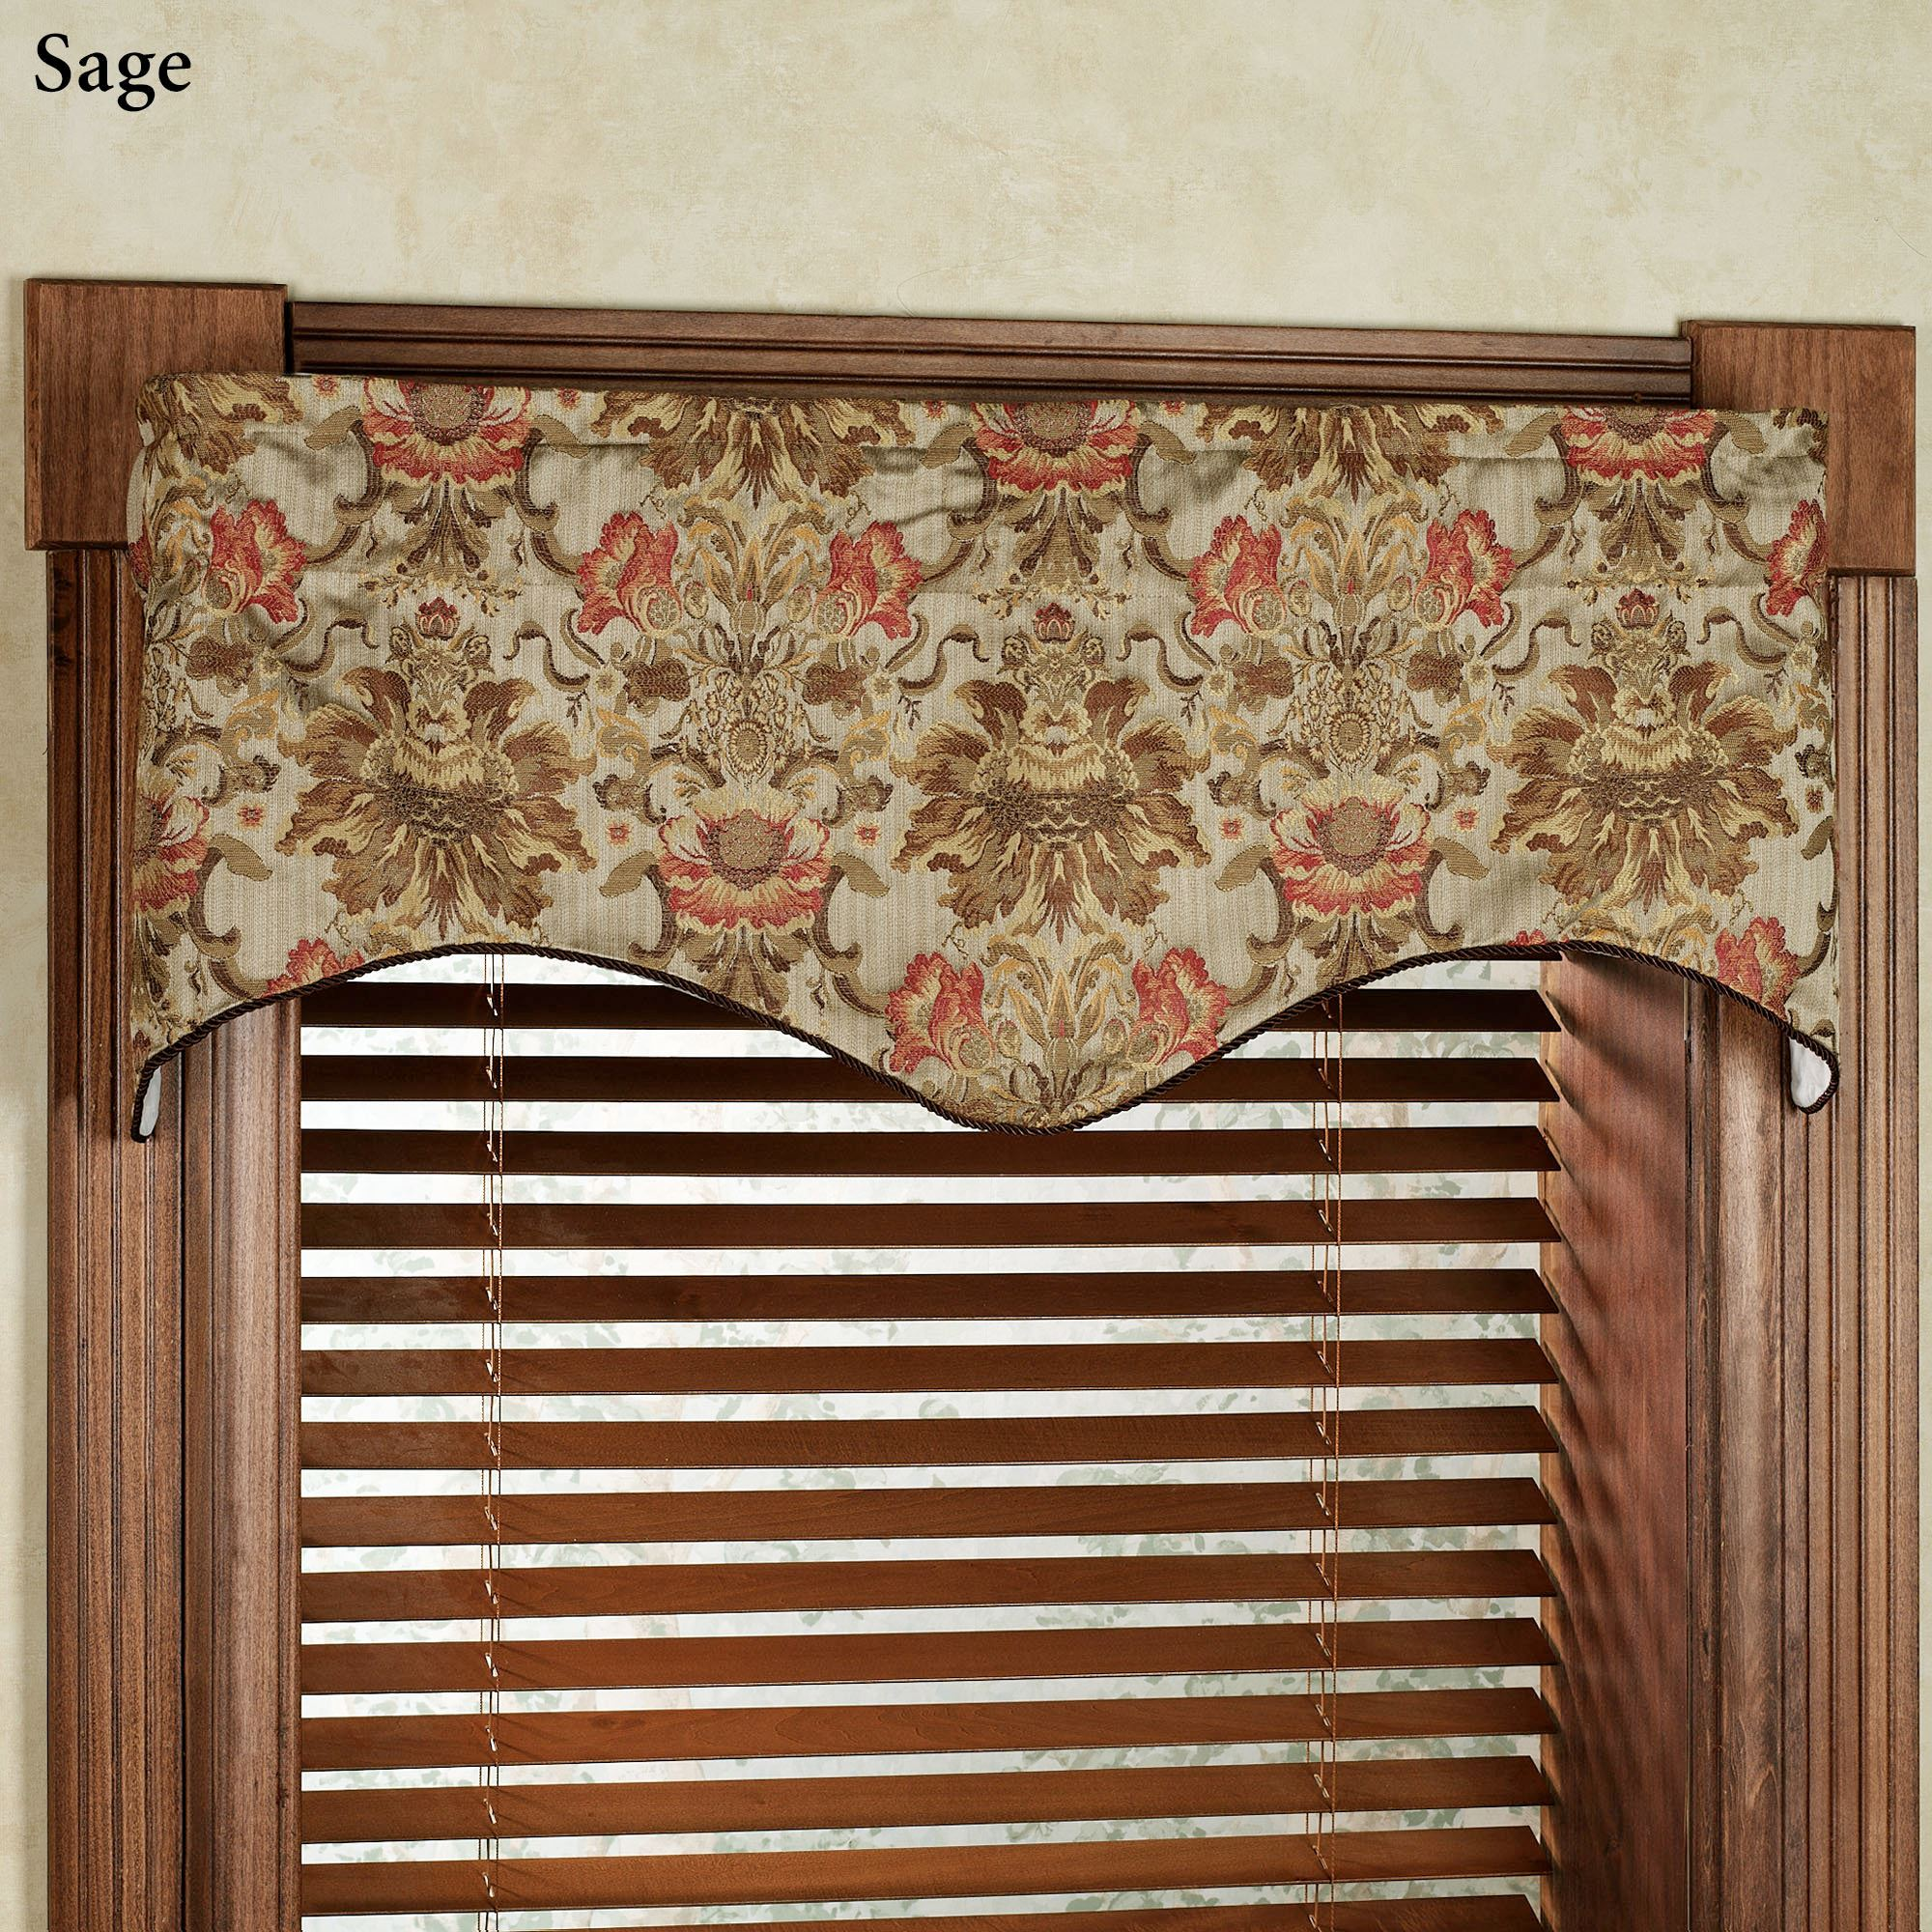 cording walmart hudson embroidered with ip com valances valance lined